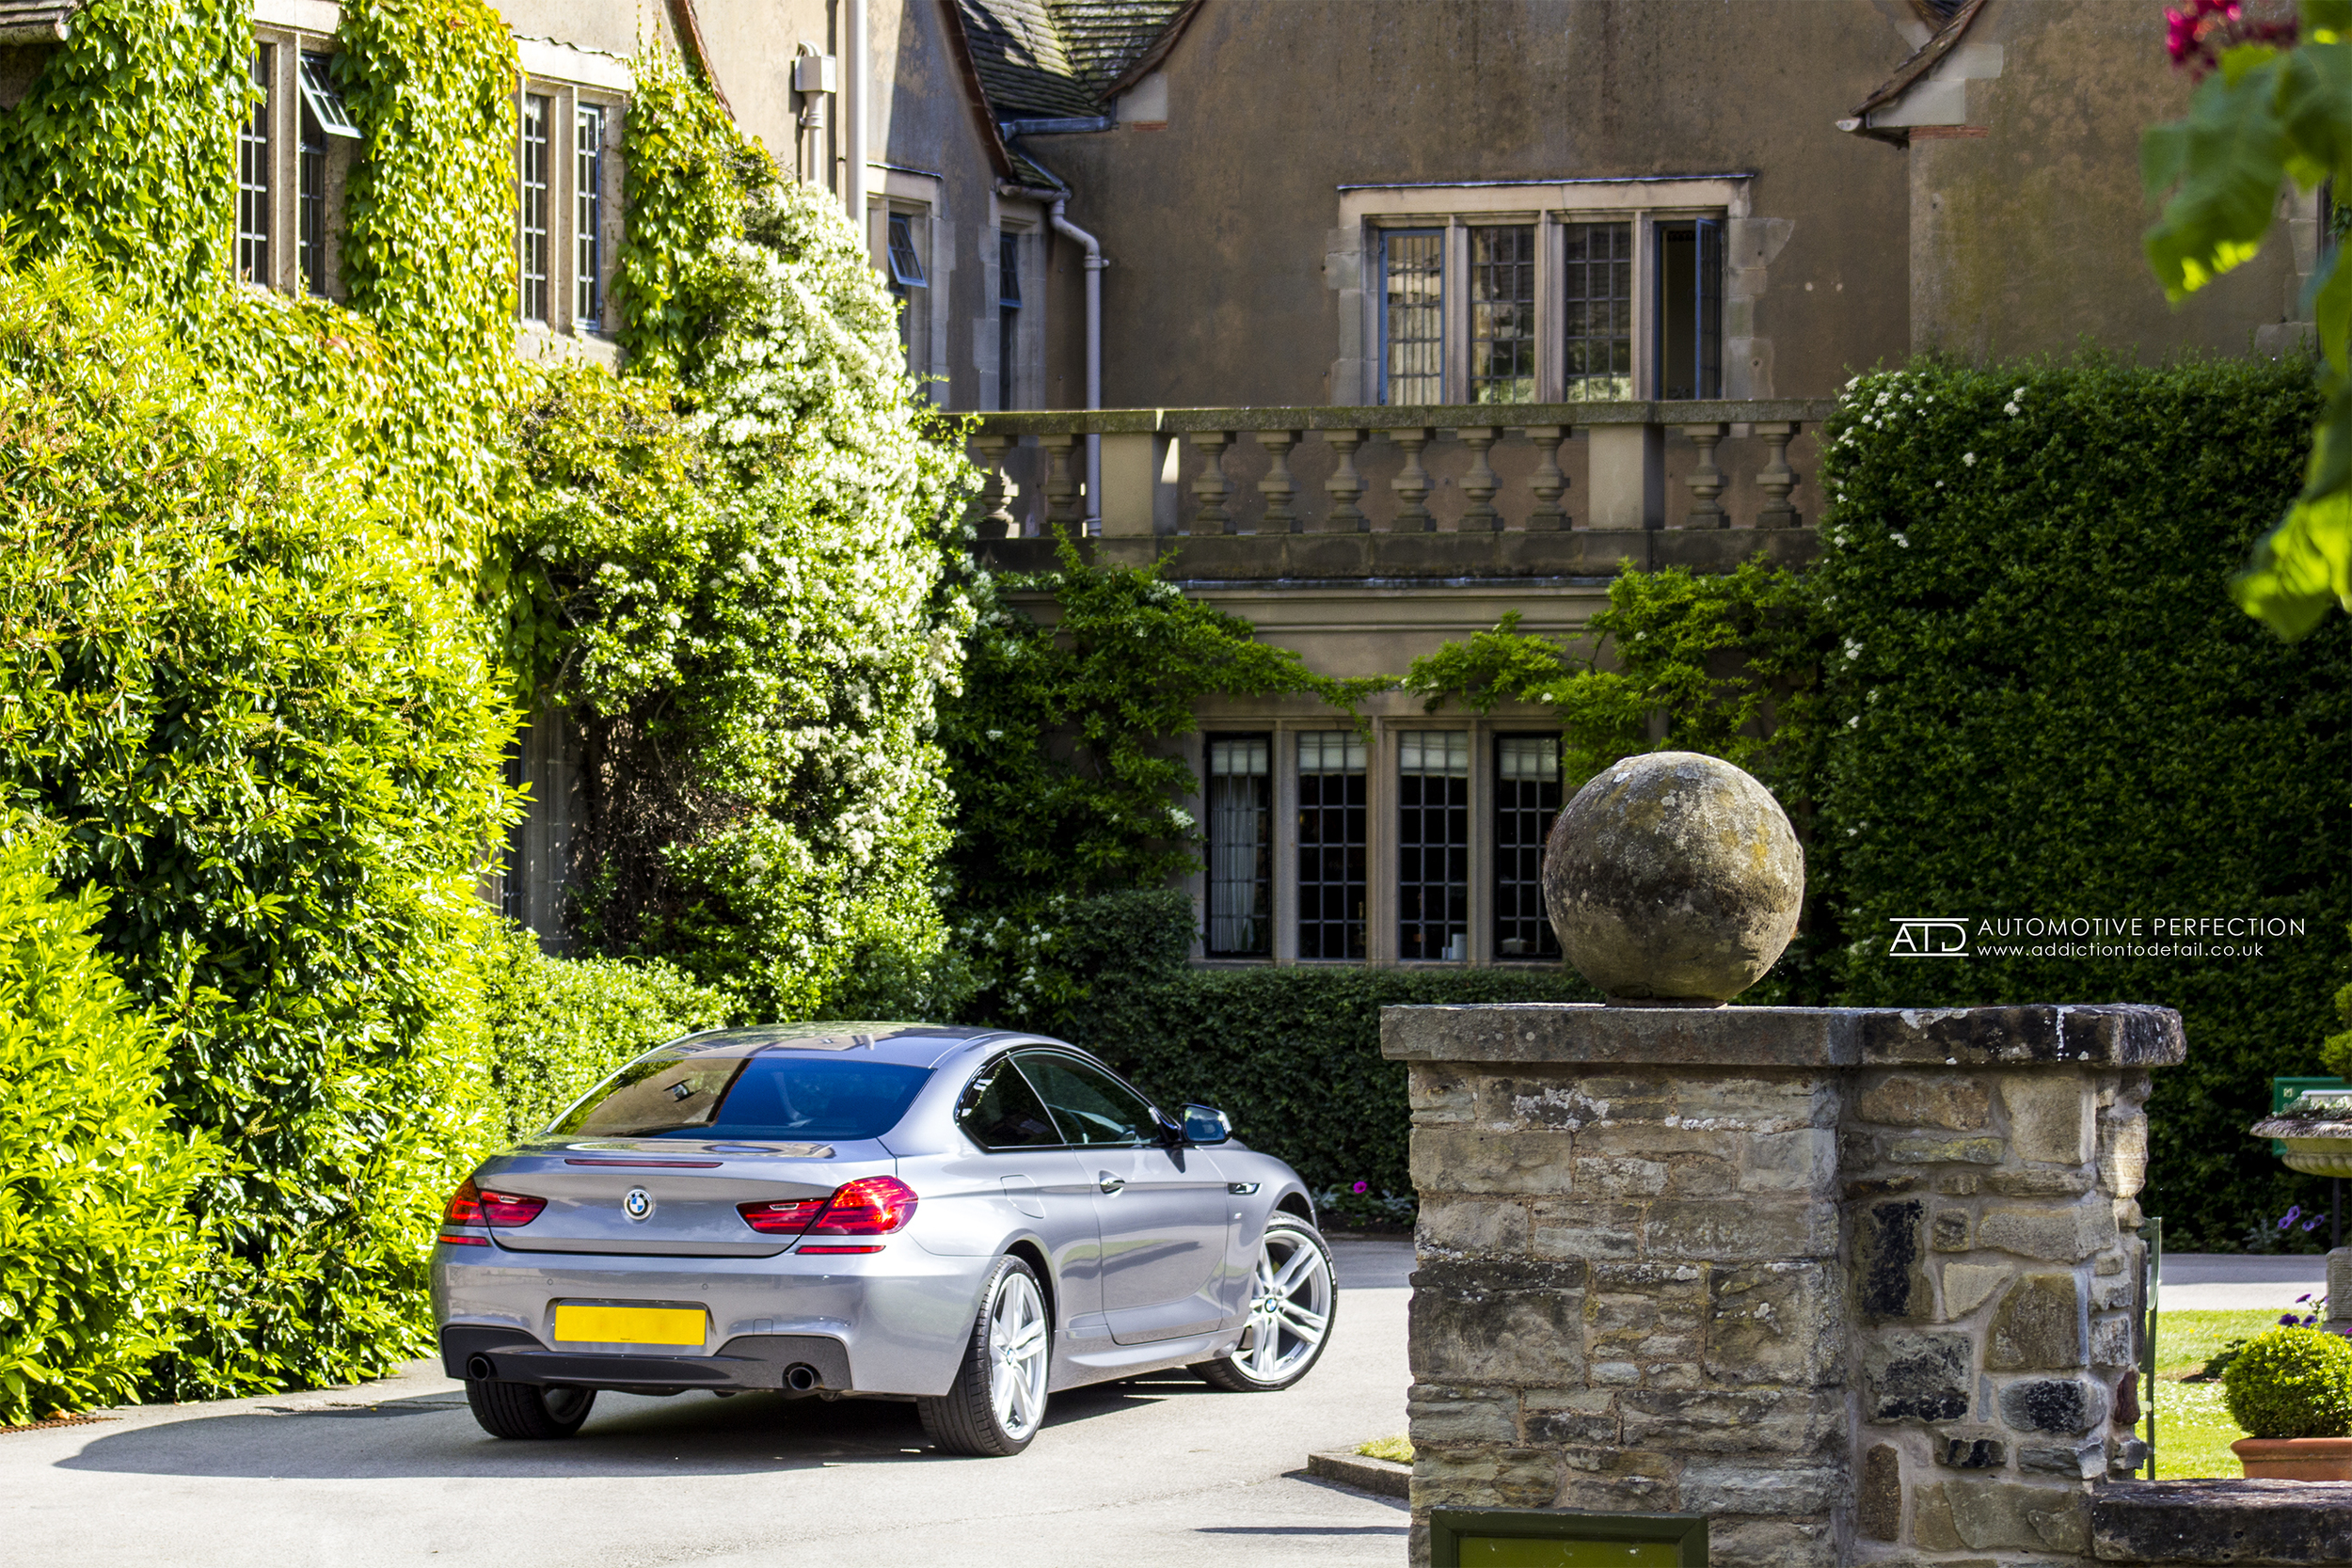 640D_Coupe_Photoshoot__0023_Image_011.jpg